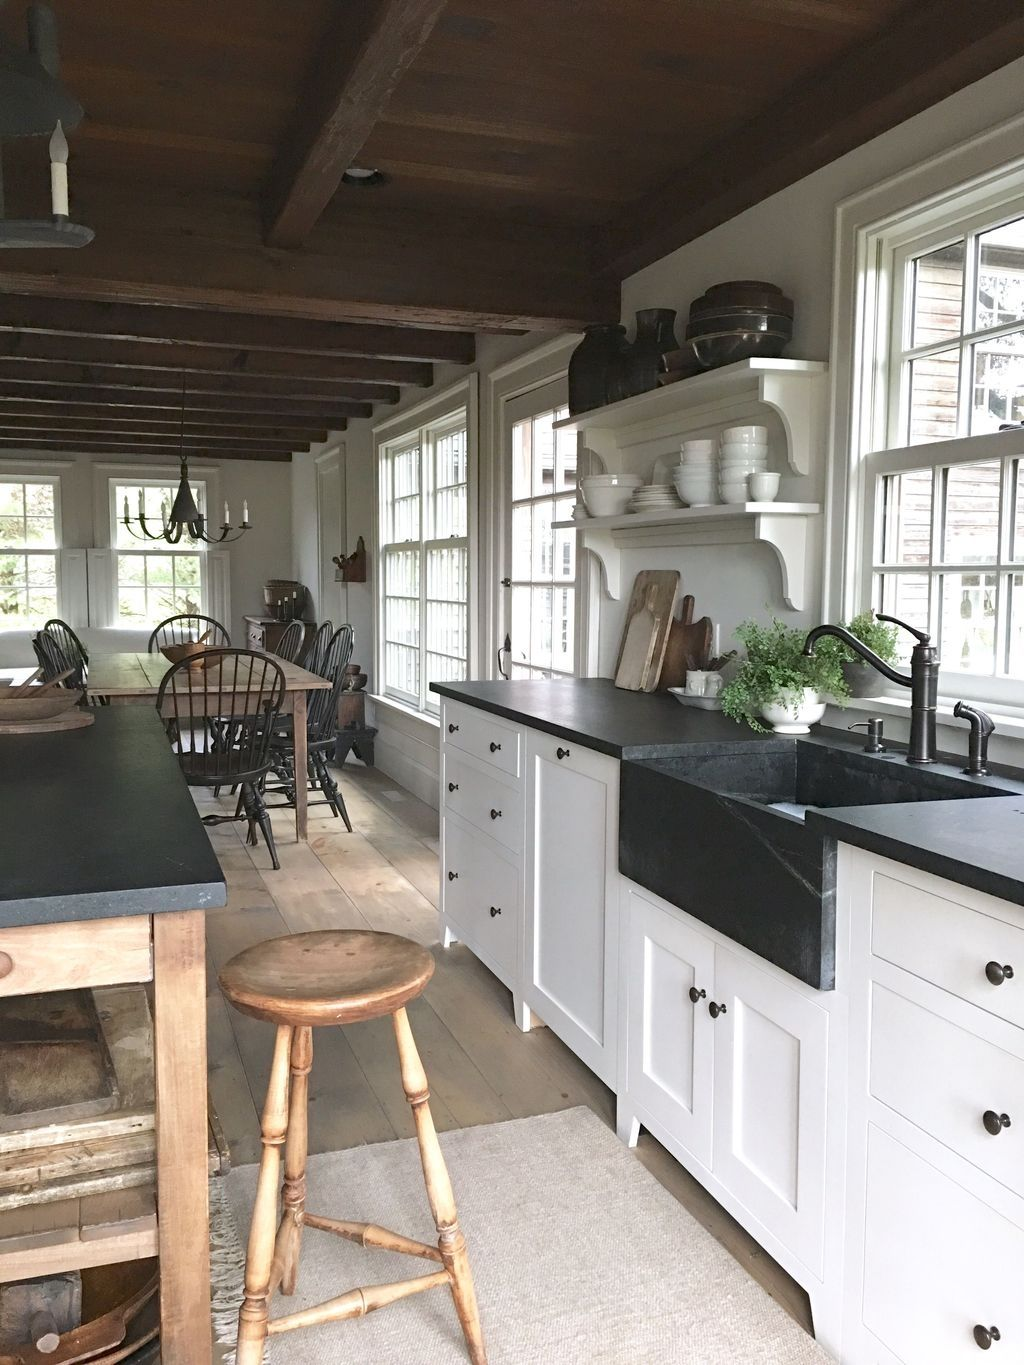 20+ Affordable English Country Kitchen Decor Ideas